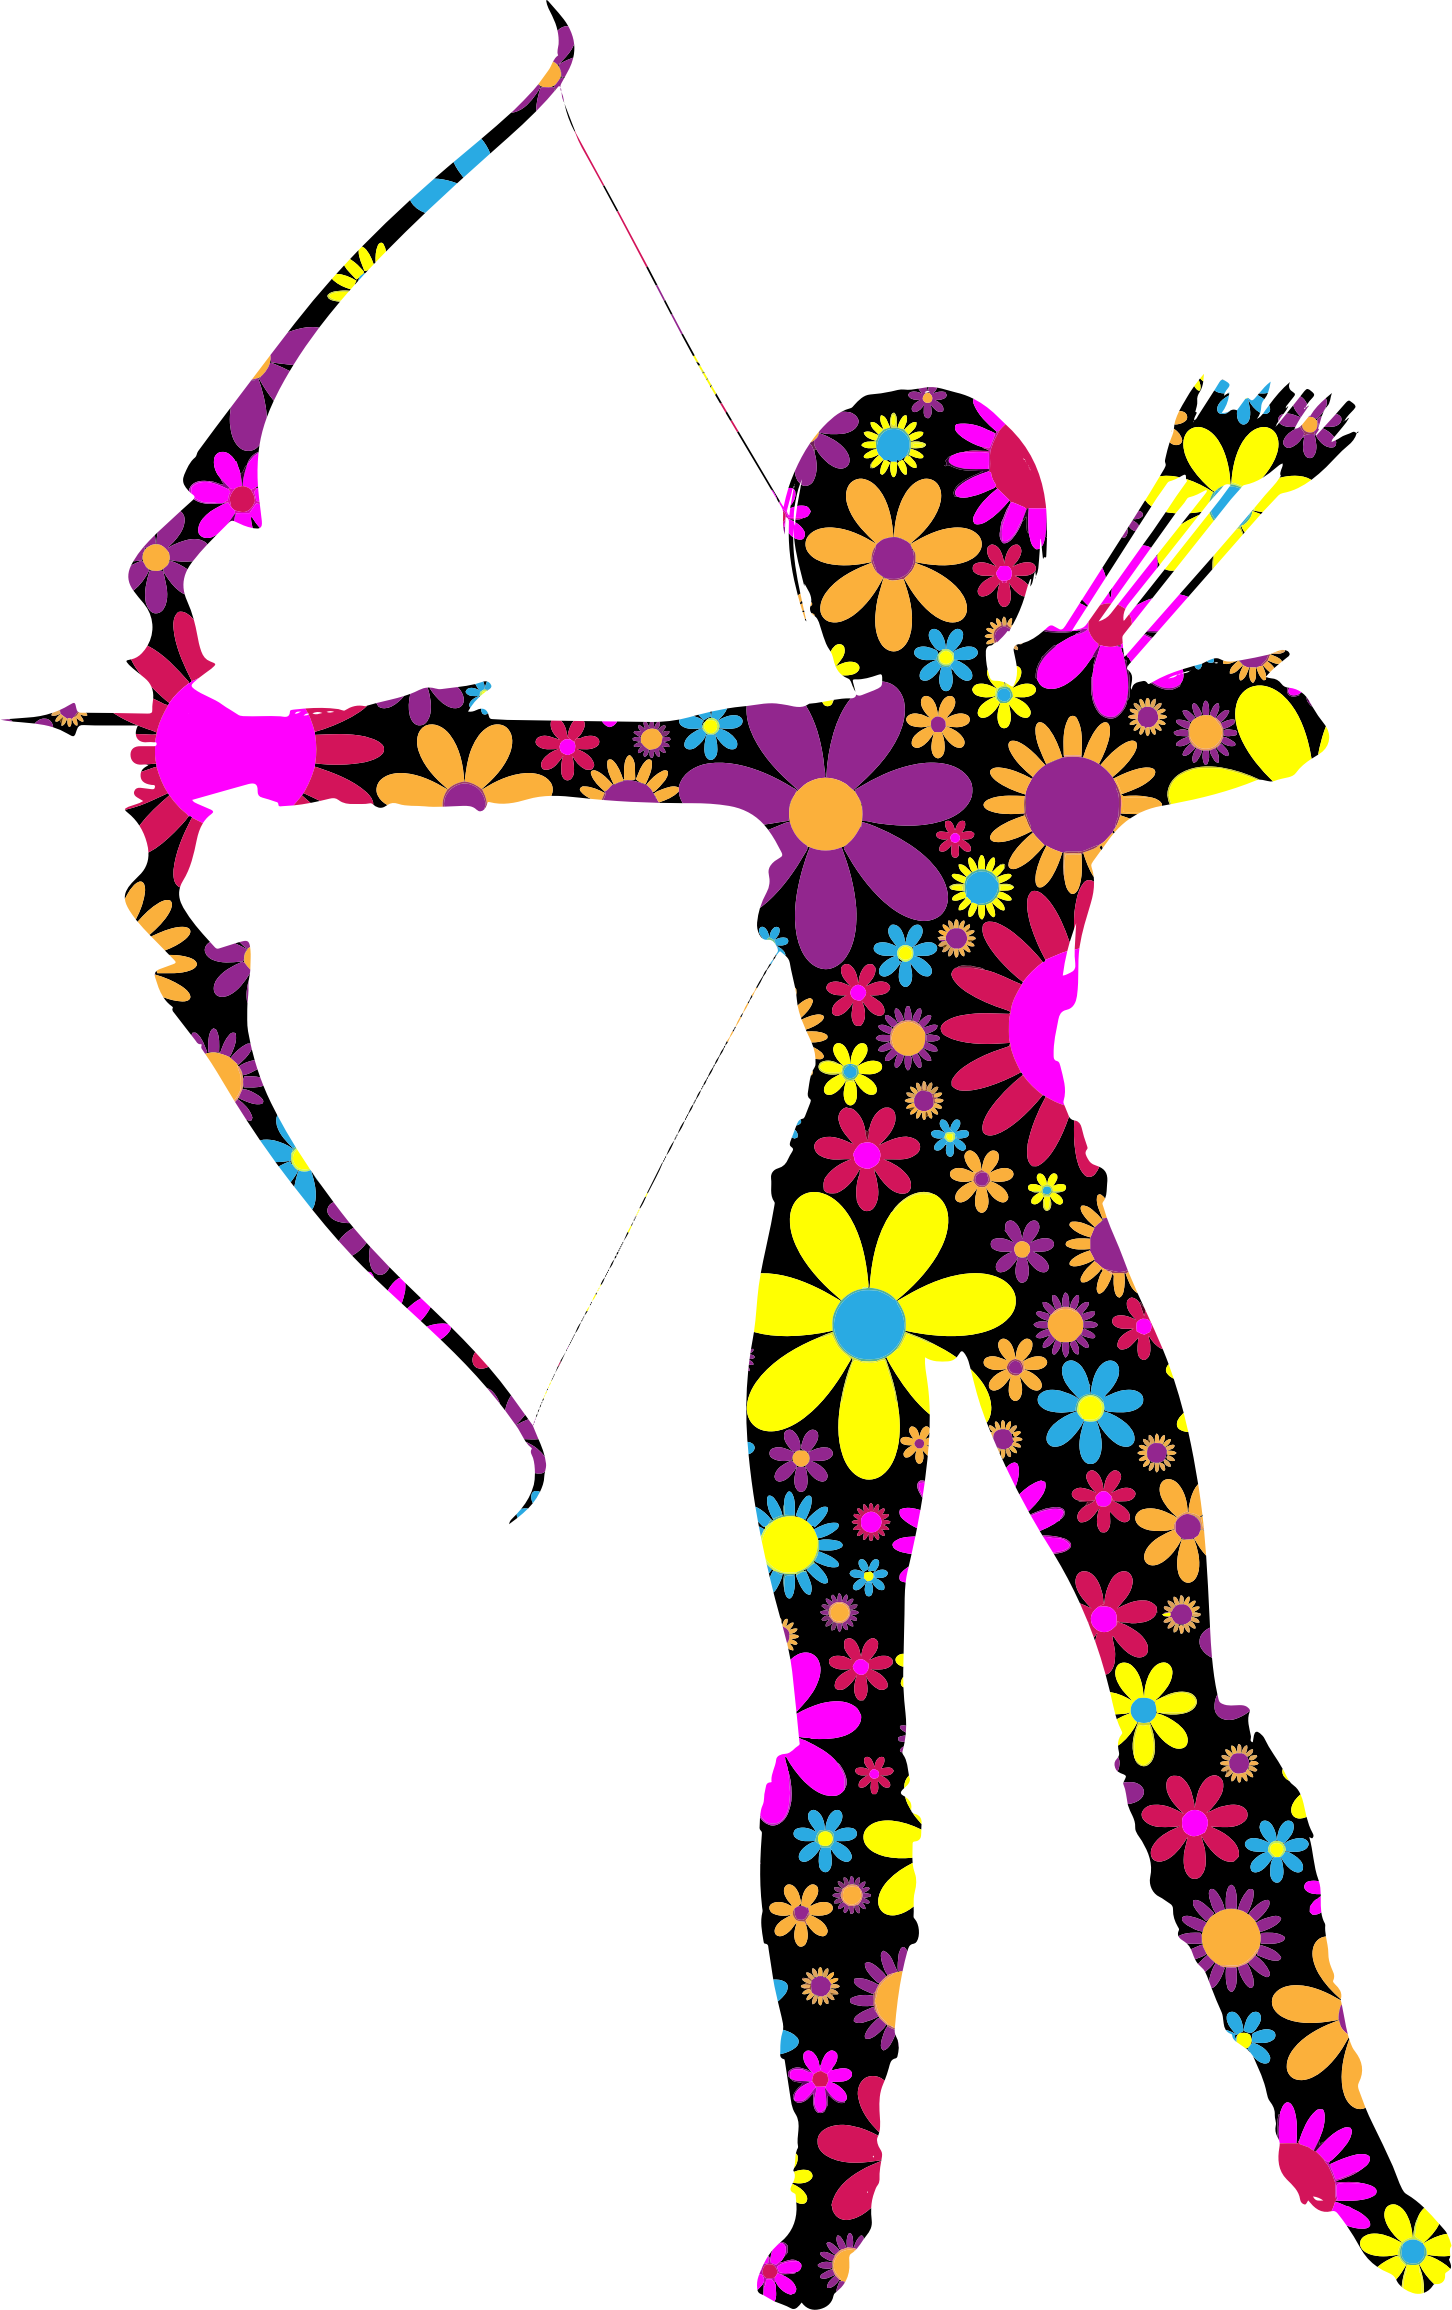 Floral Amazon Archer Silhouette by GDJ